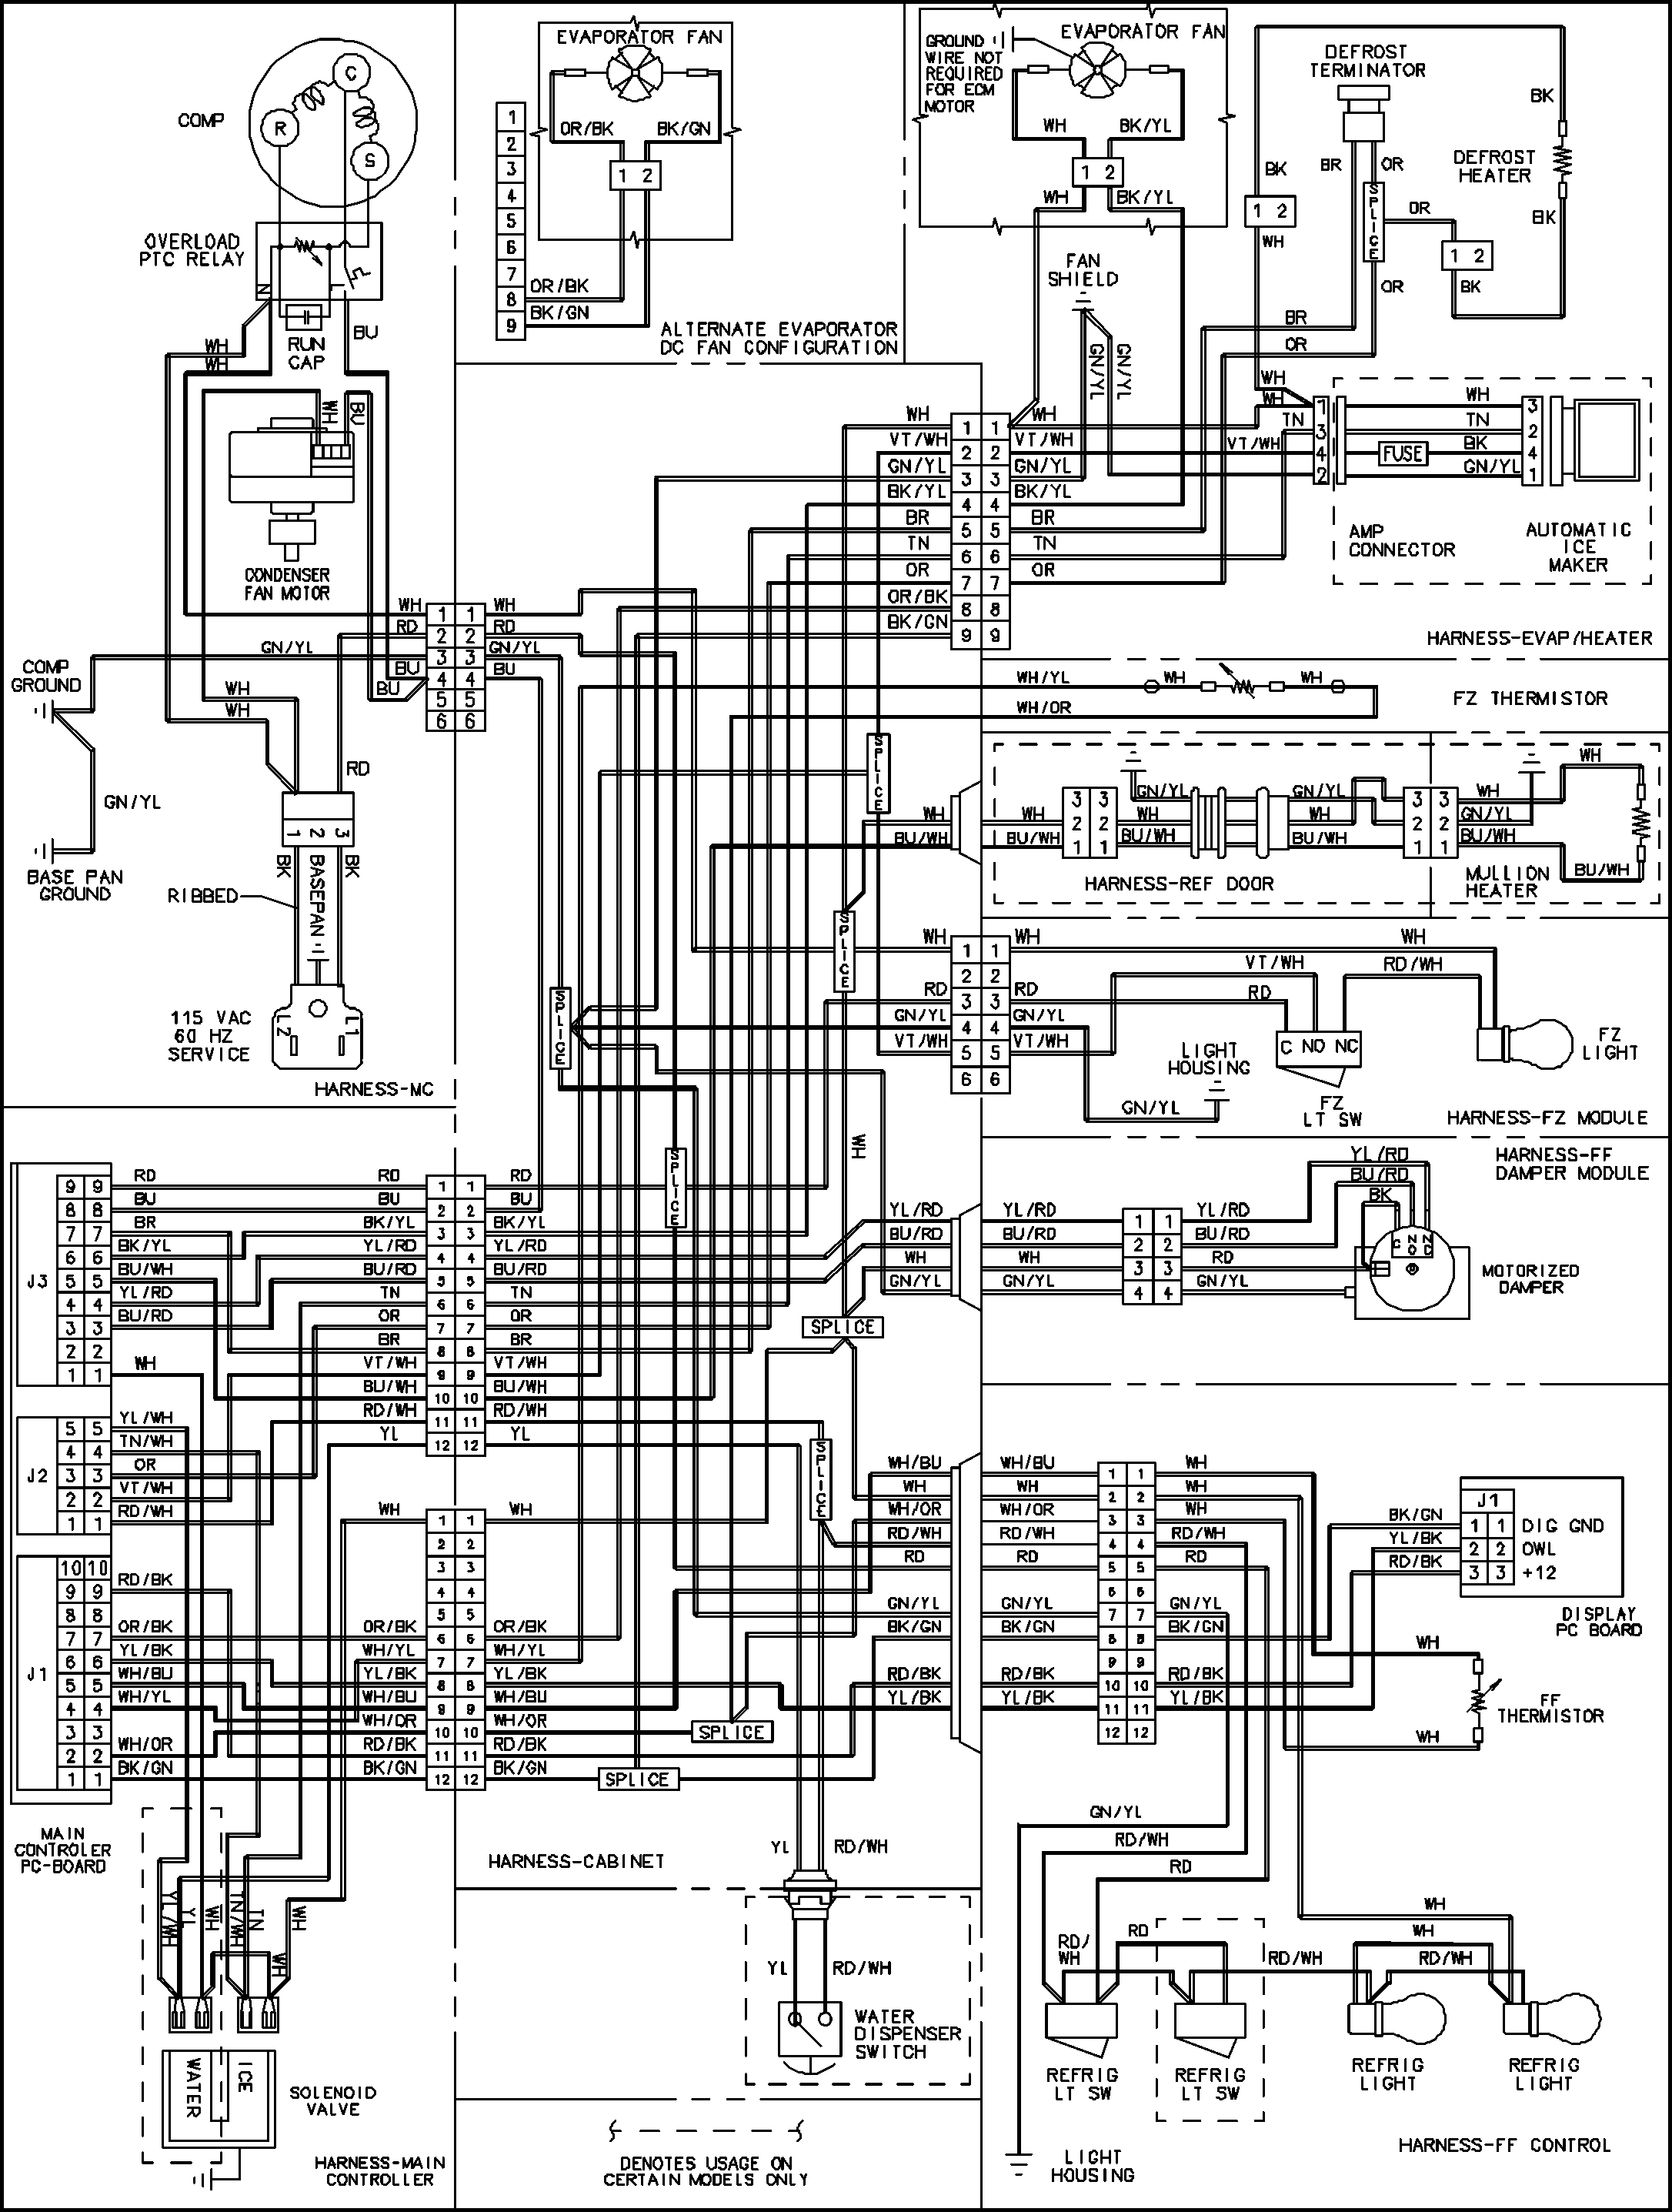 bohn walk in freezer wiring diagram walk in freezer wiring diagram